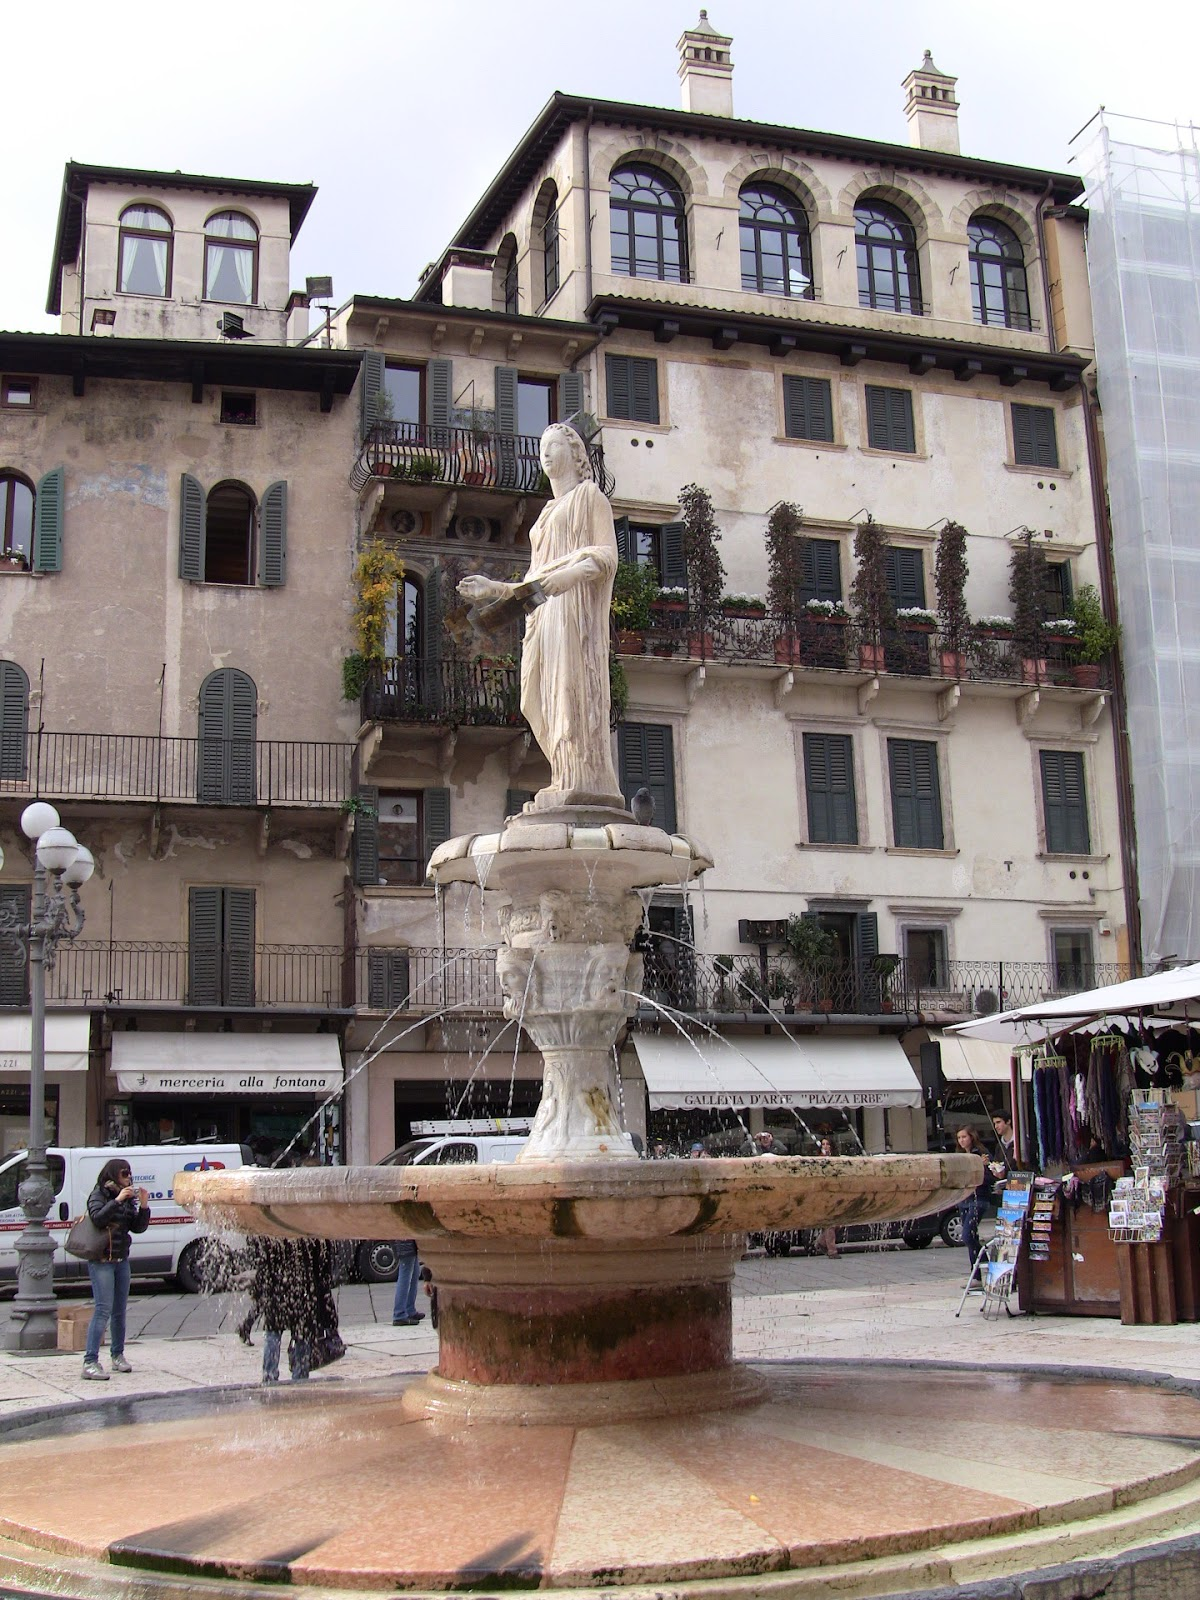 The Madonna Verona in the Piazza delle Erbe is 2,000 years old. Photo: Gail Keller, WineTrekkerTV.com.